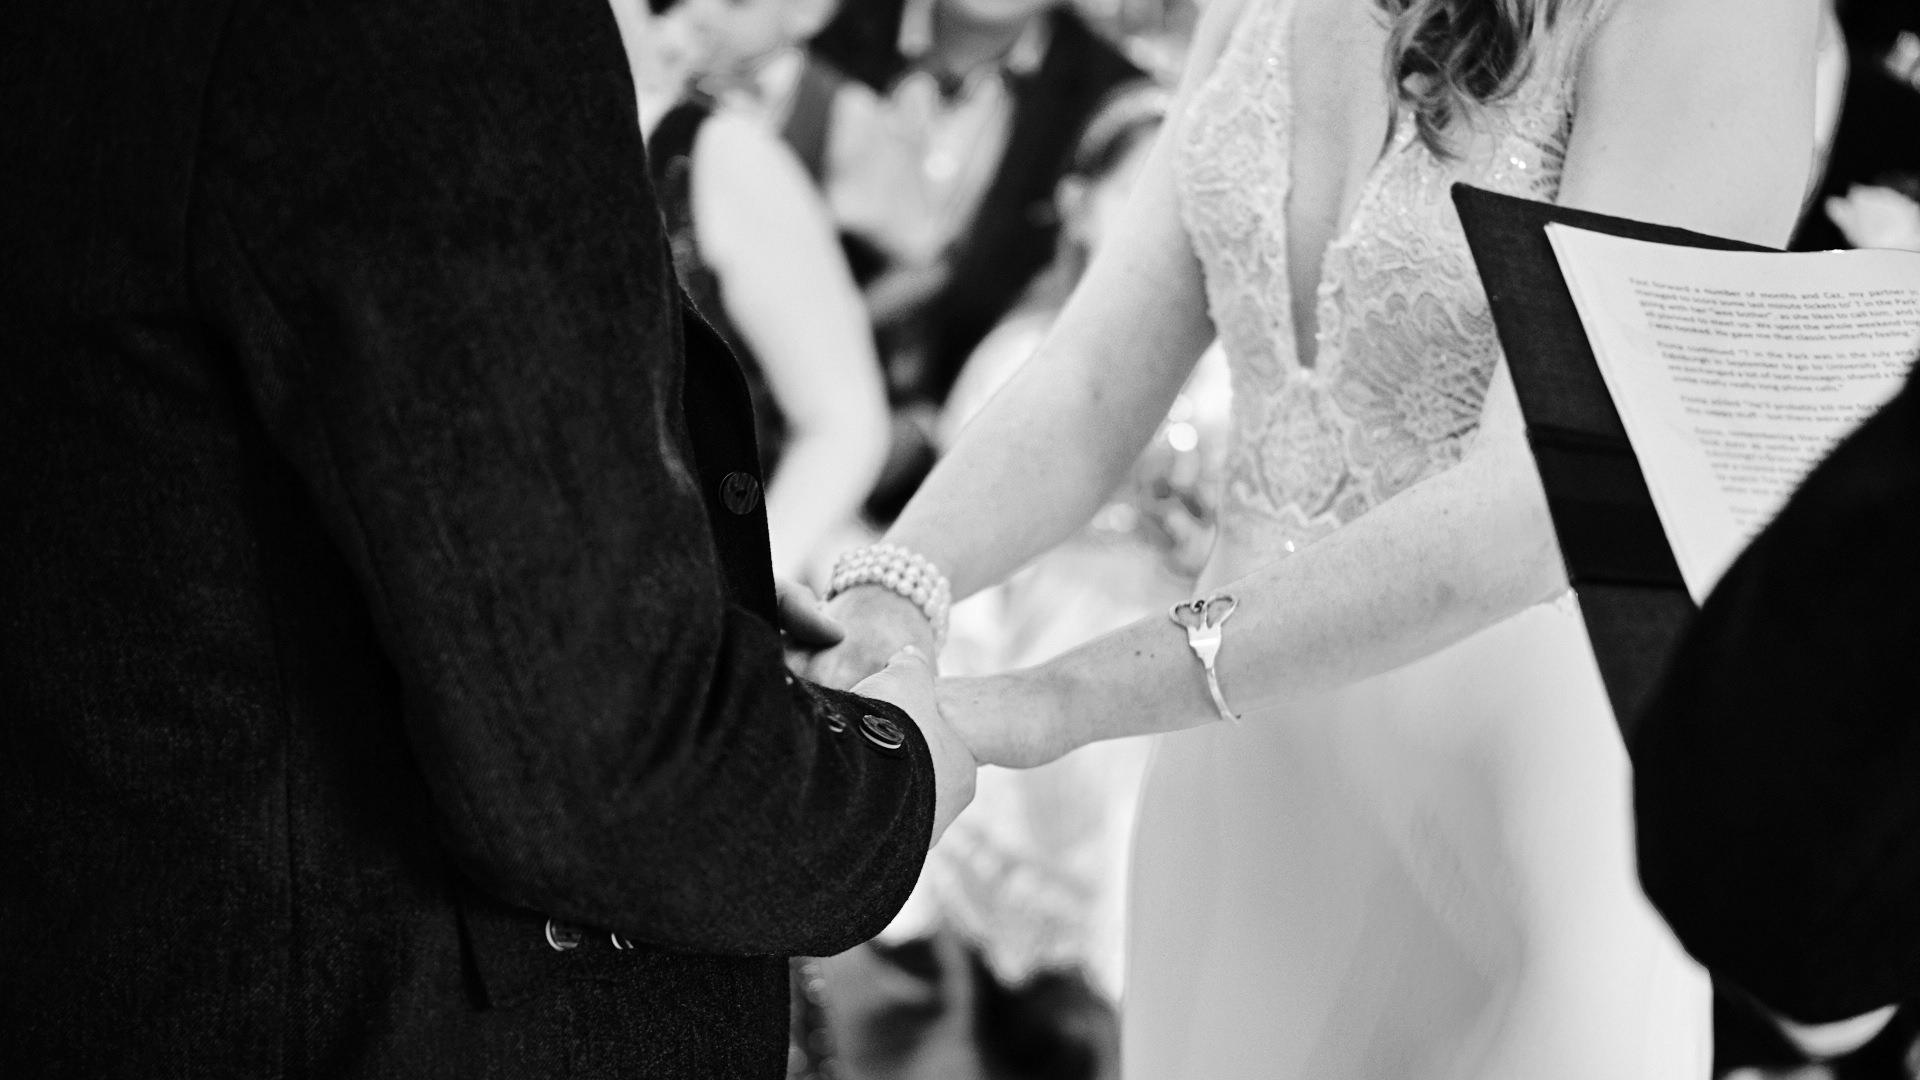 black and white close up photograph of the bride and groom holding hands during their wedding ceremony